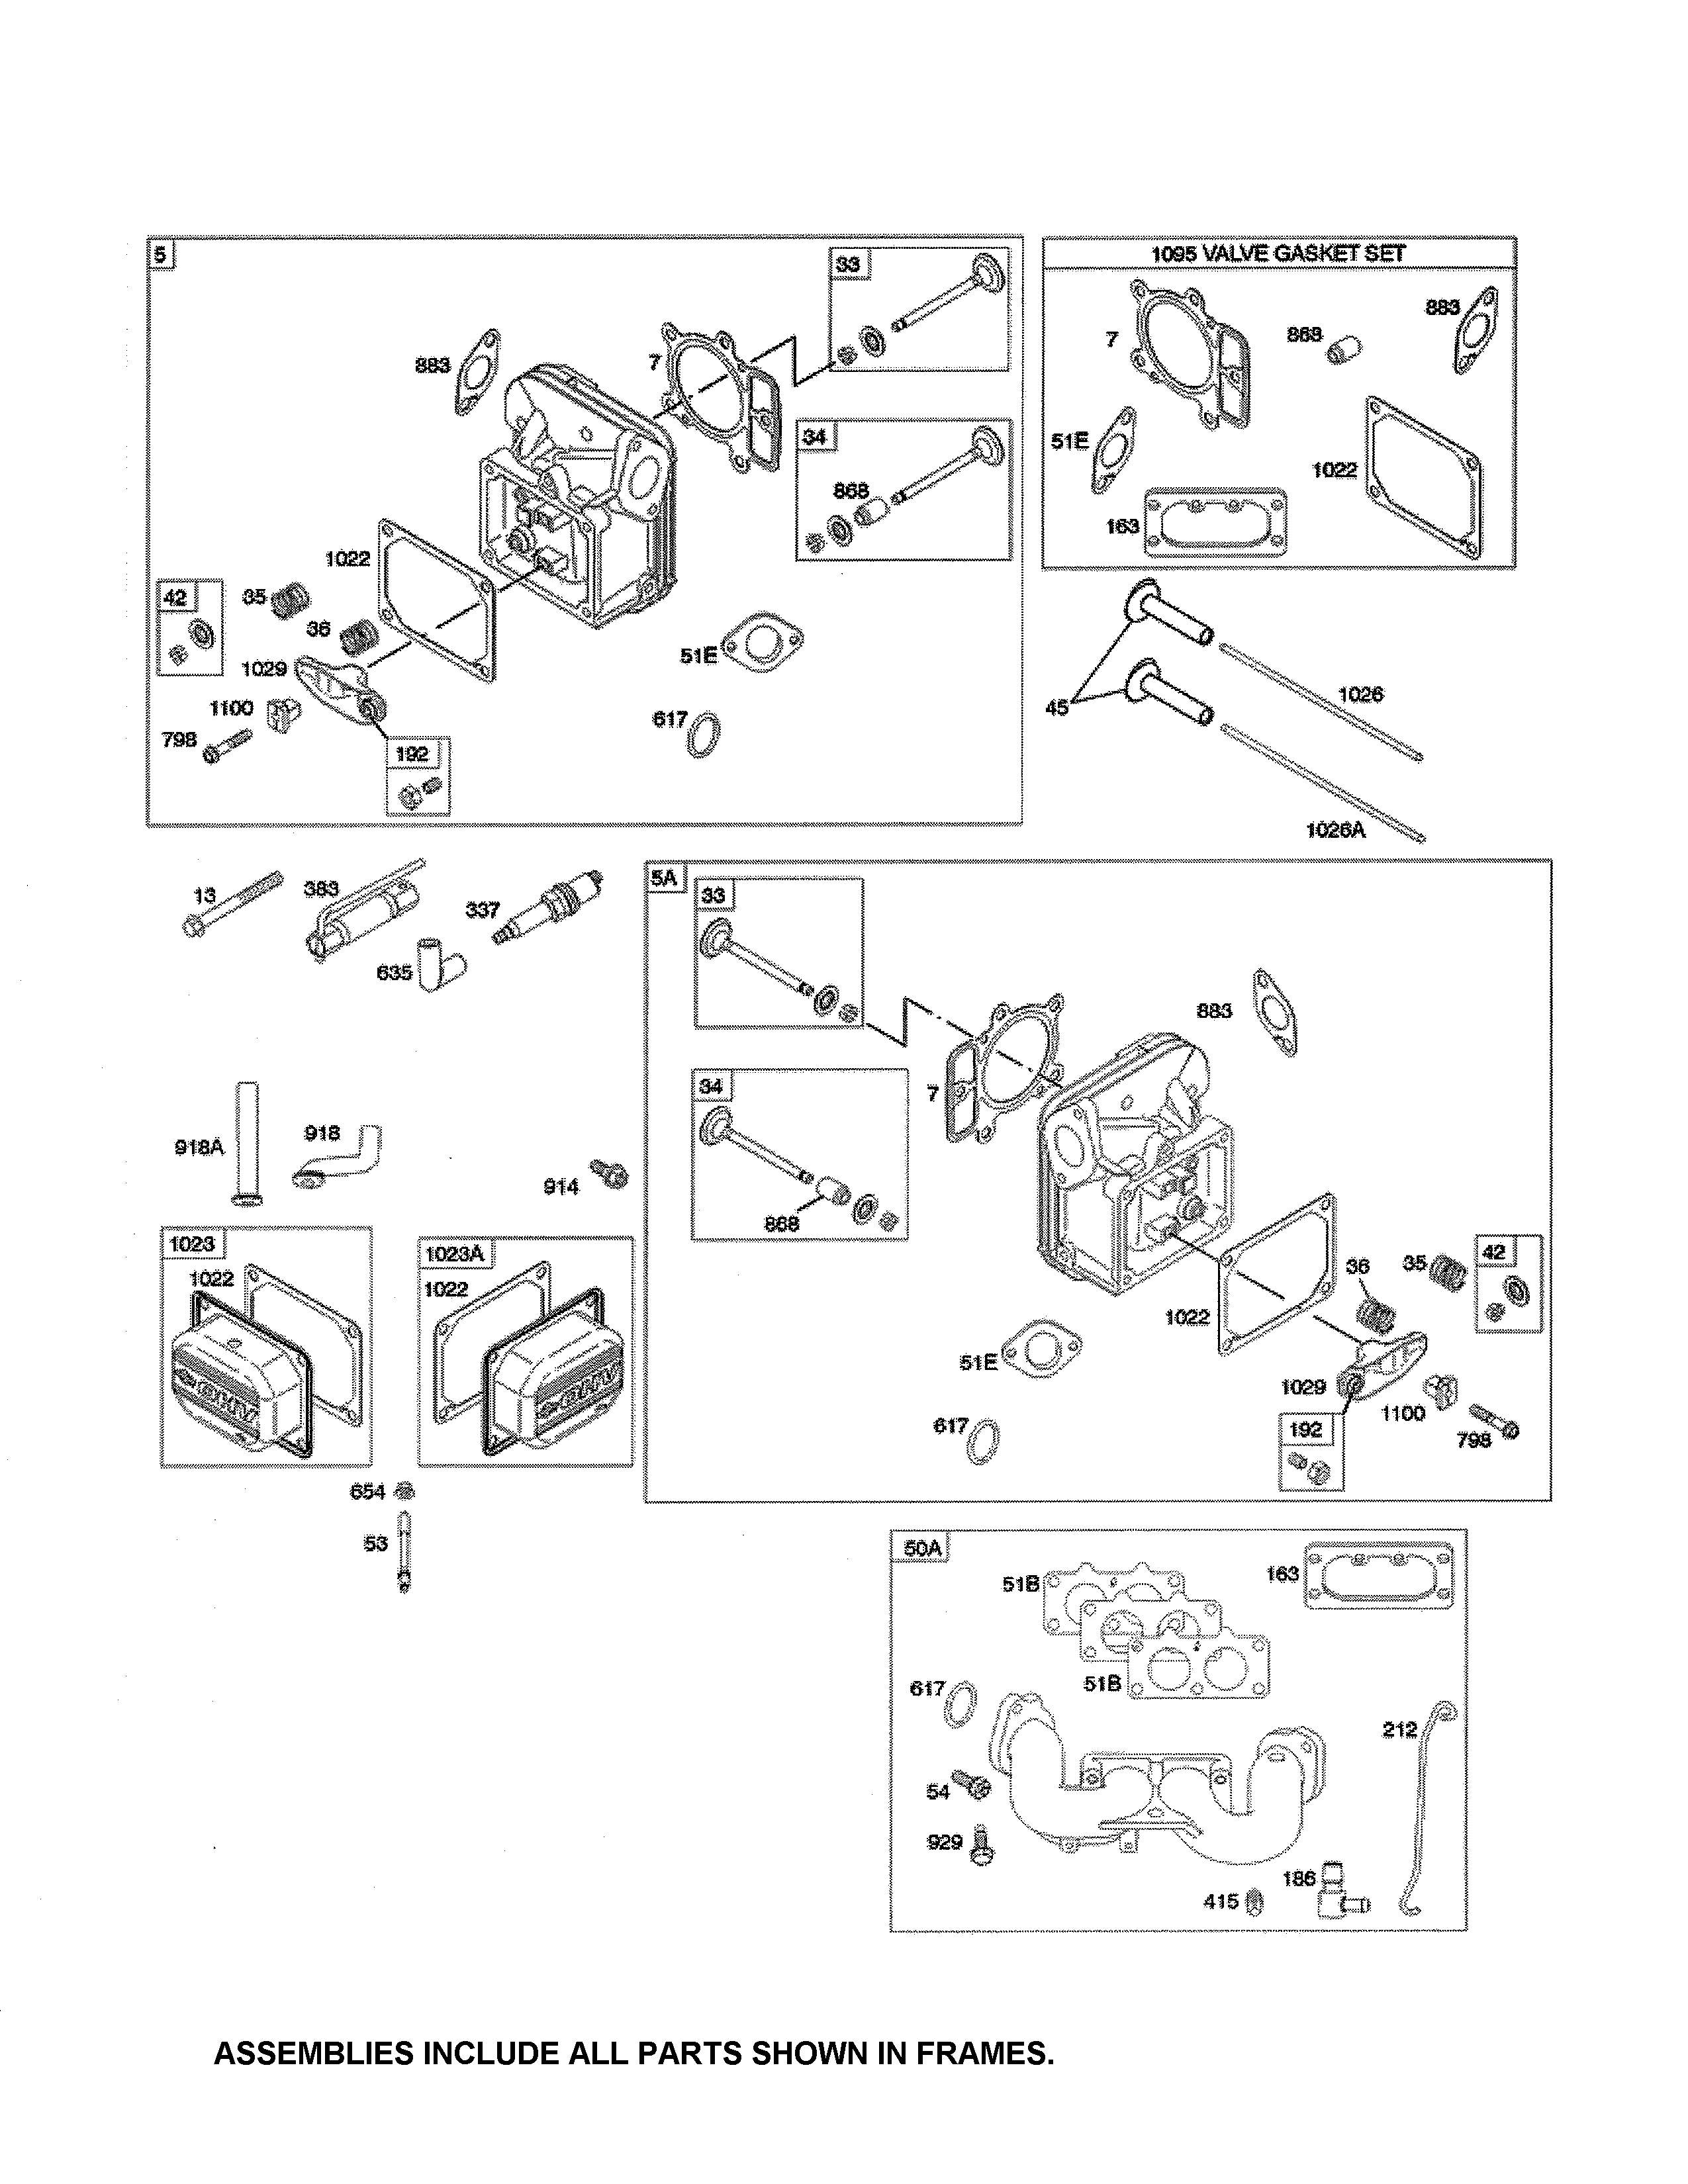 Wiring Diagram For A Briggs And Stratton Engine